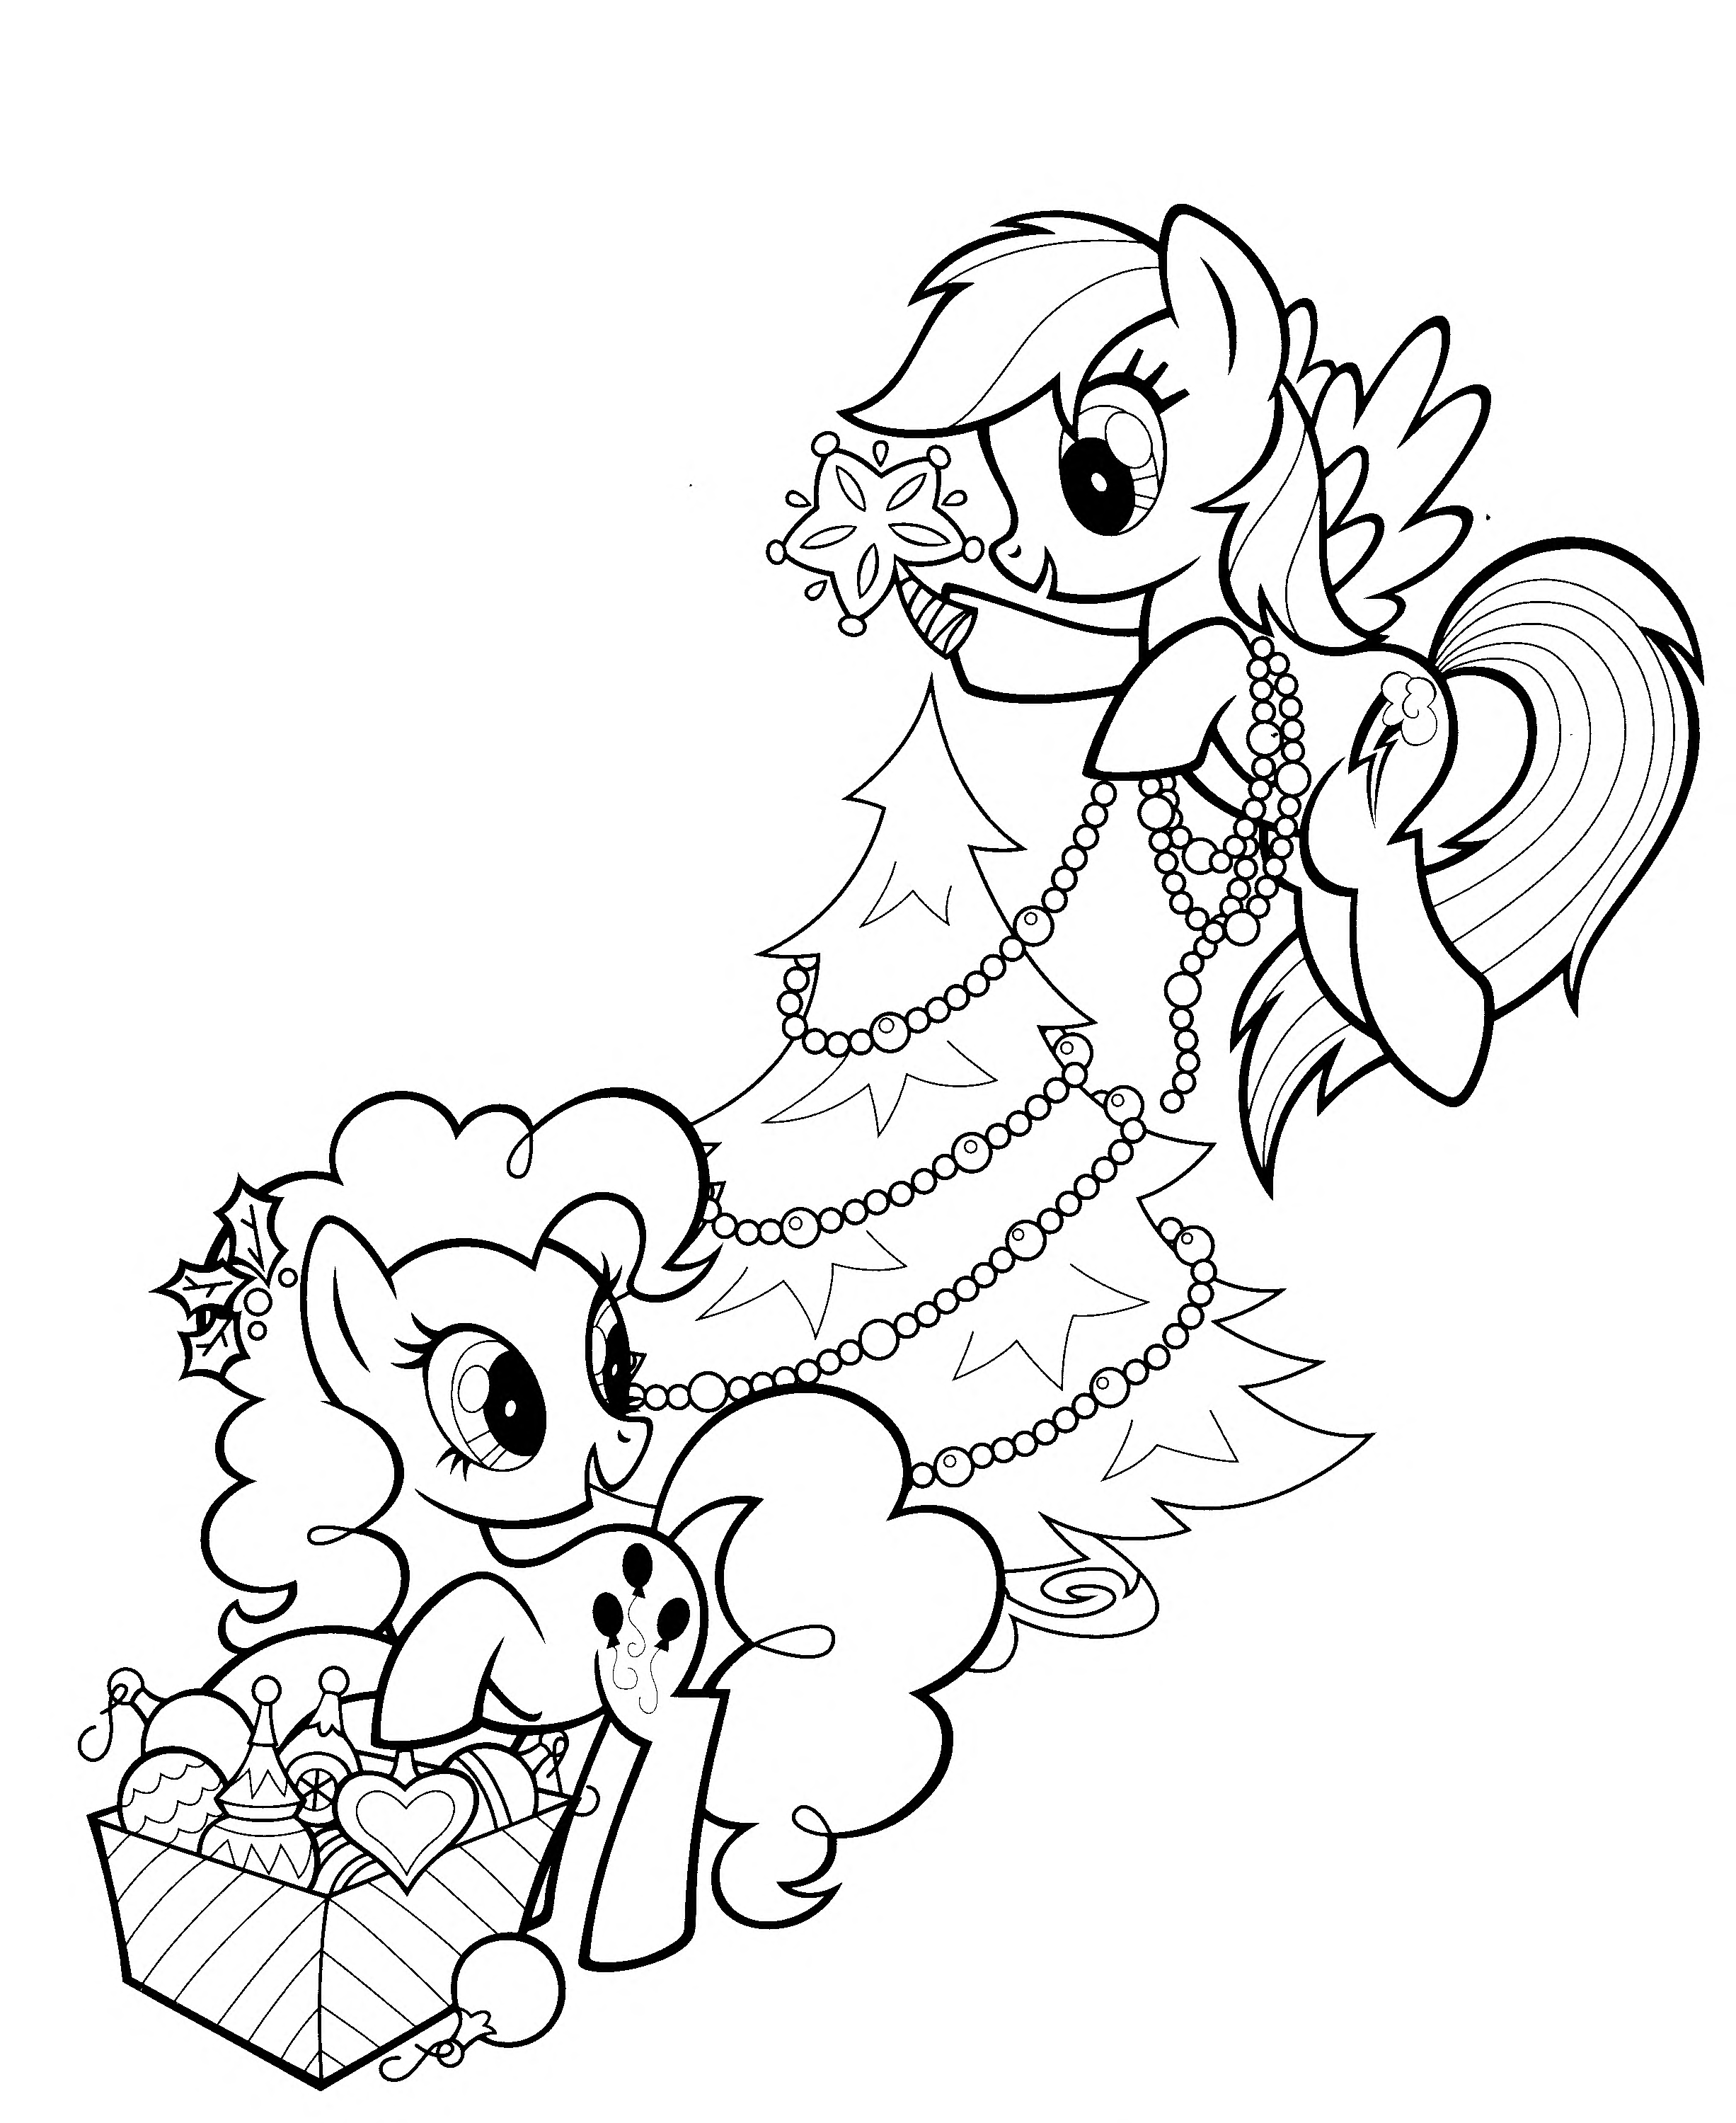 Pin By Sonia Ribeiro On Coloring Picture My Little Pony Coloring Horse Coloring Pages Christmas Coloring Pages